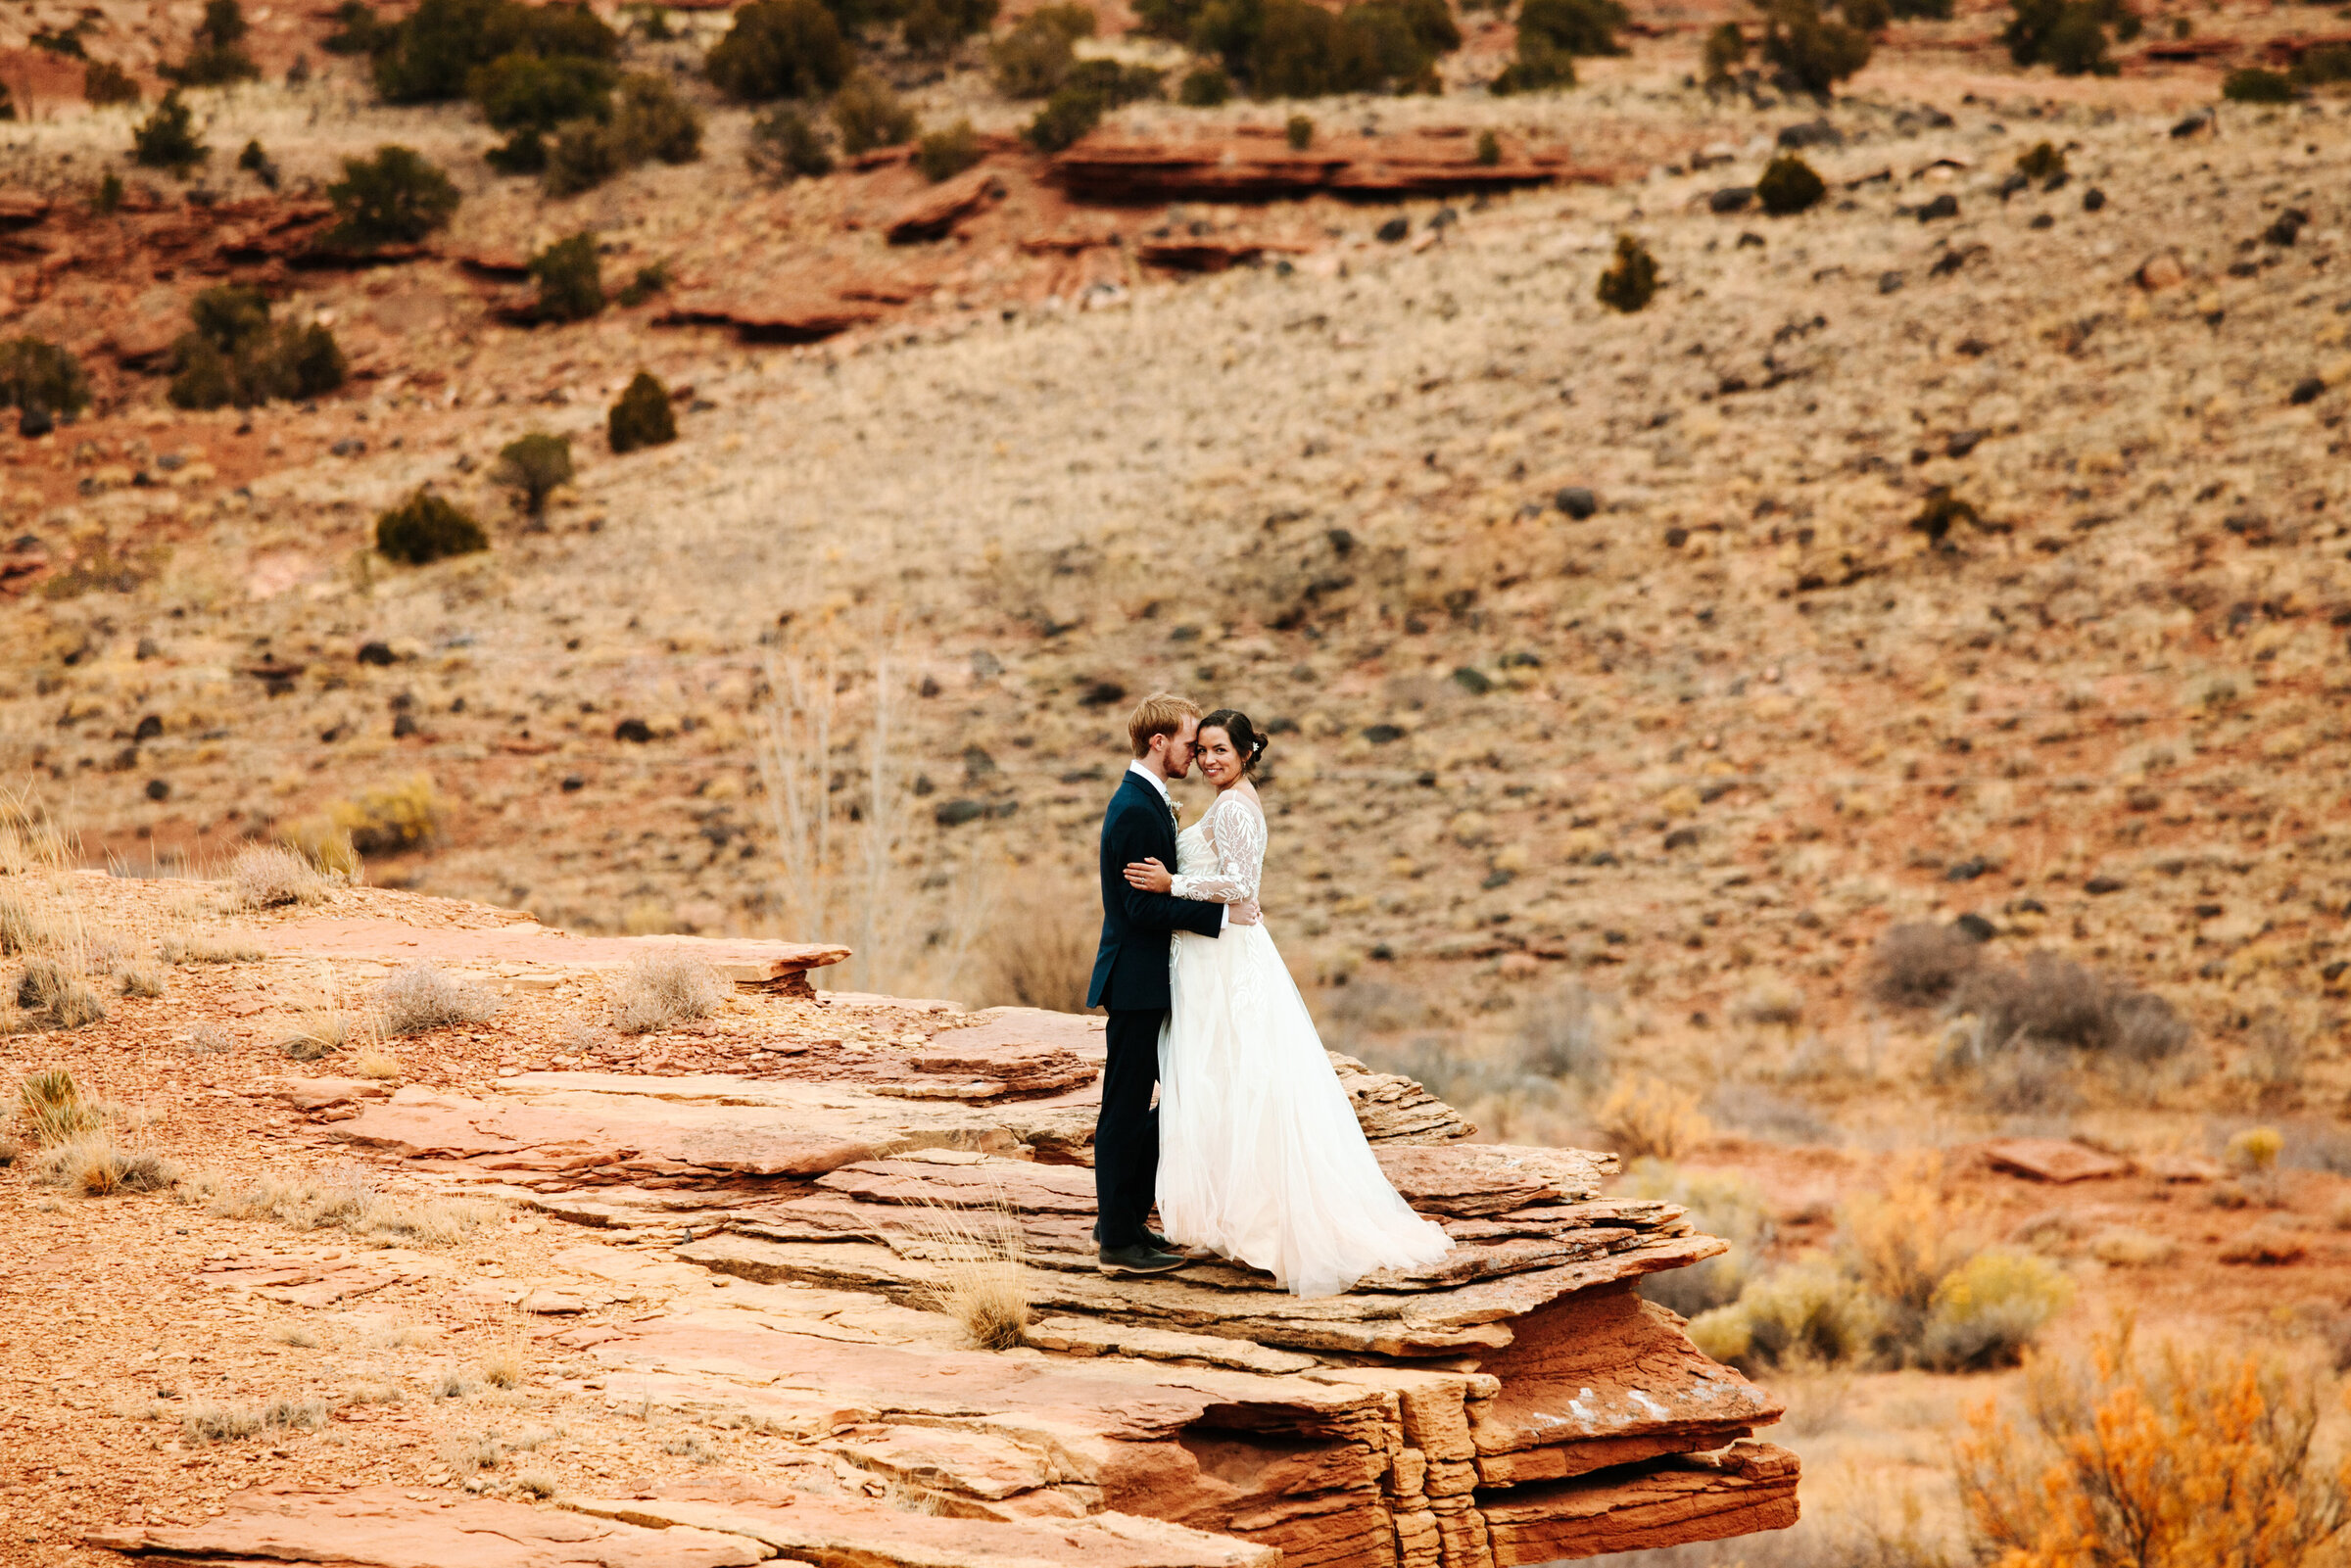 Bride and groom stand on a red rock cliff in Capitol Reef National Park near Moab, Utah holding each other closely. The bride is looking at the camera.